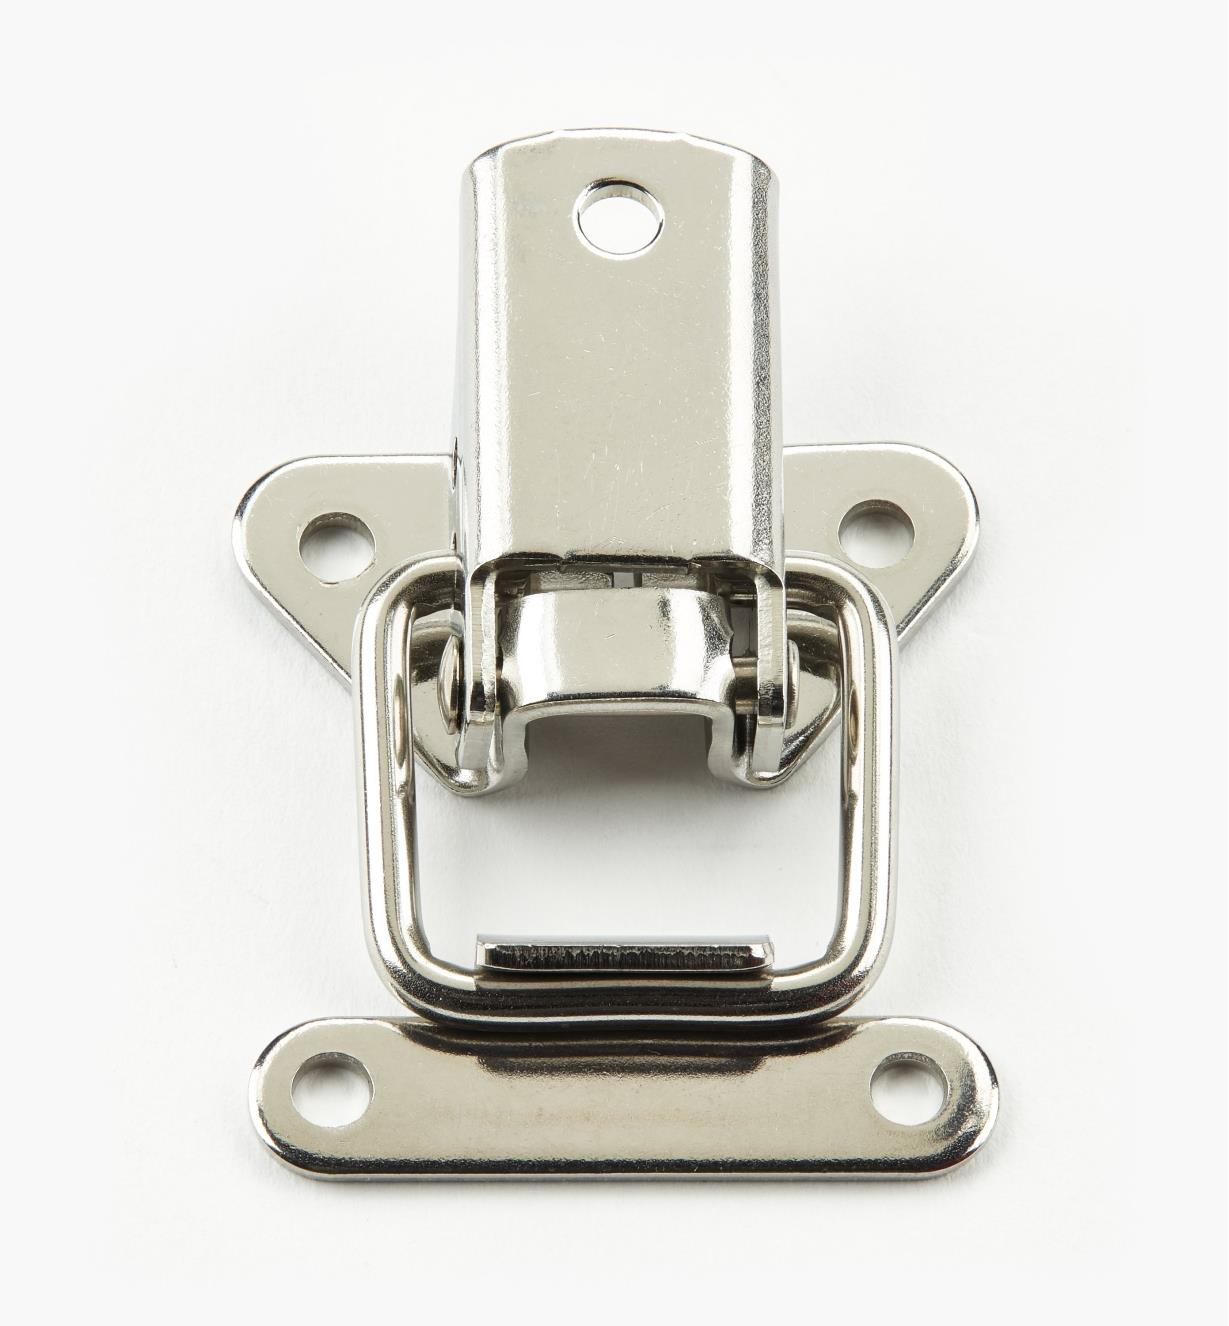 00S5590 - Stainless Steel Draw Latch